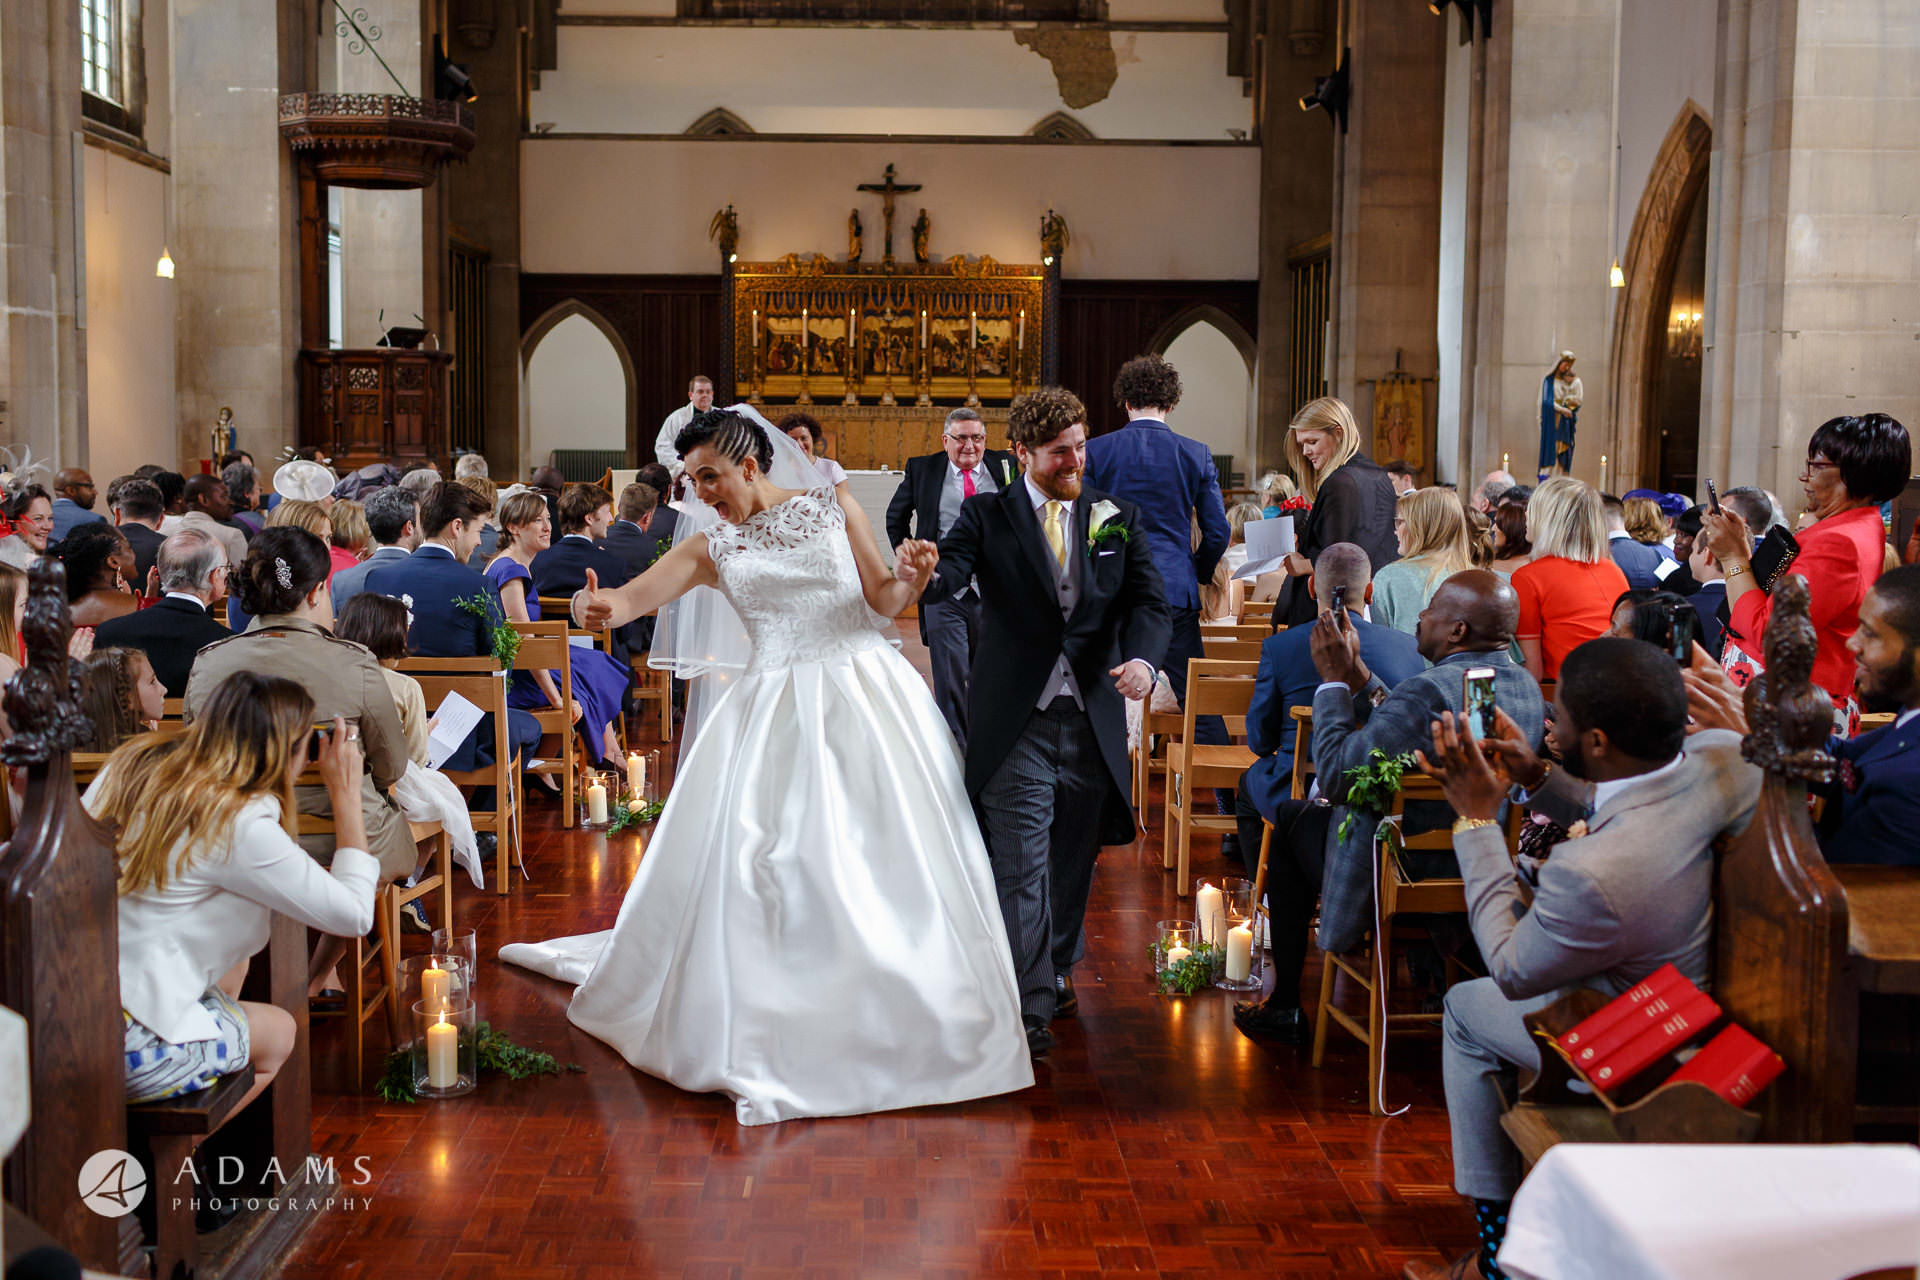 Bride and Groom walking down aisle at st Mary of Eton church in hackney wick during their wedding ceremony